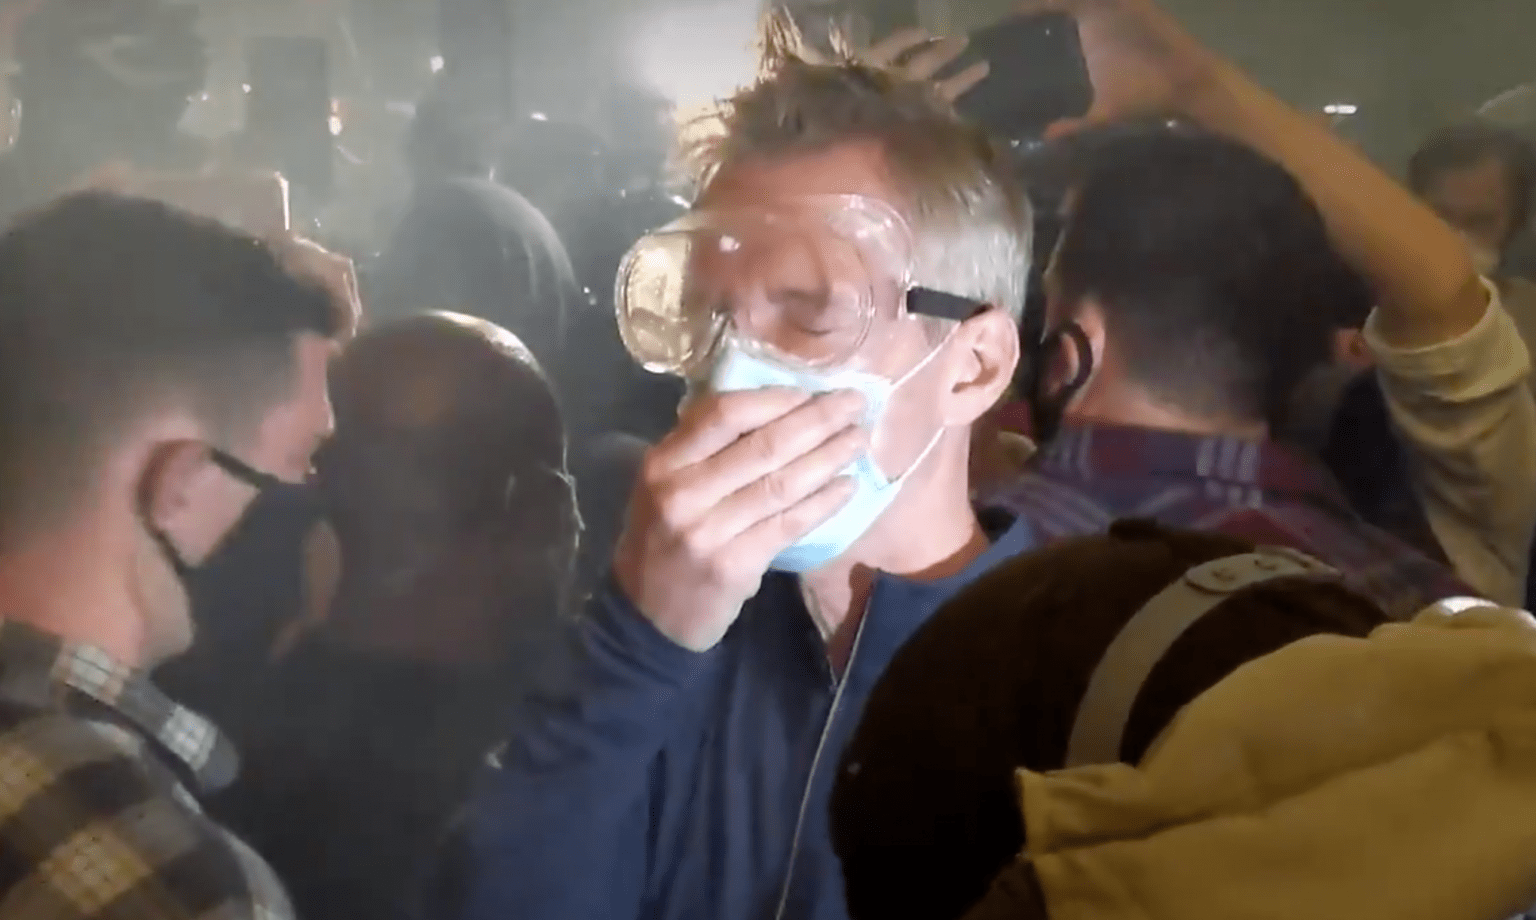 Portland mayor joins protestors - gets jeered, cursed at, objects thrown at him - and gets exposed to tear gas